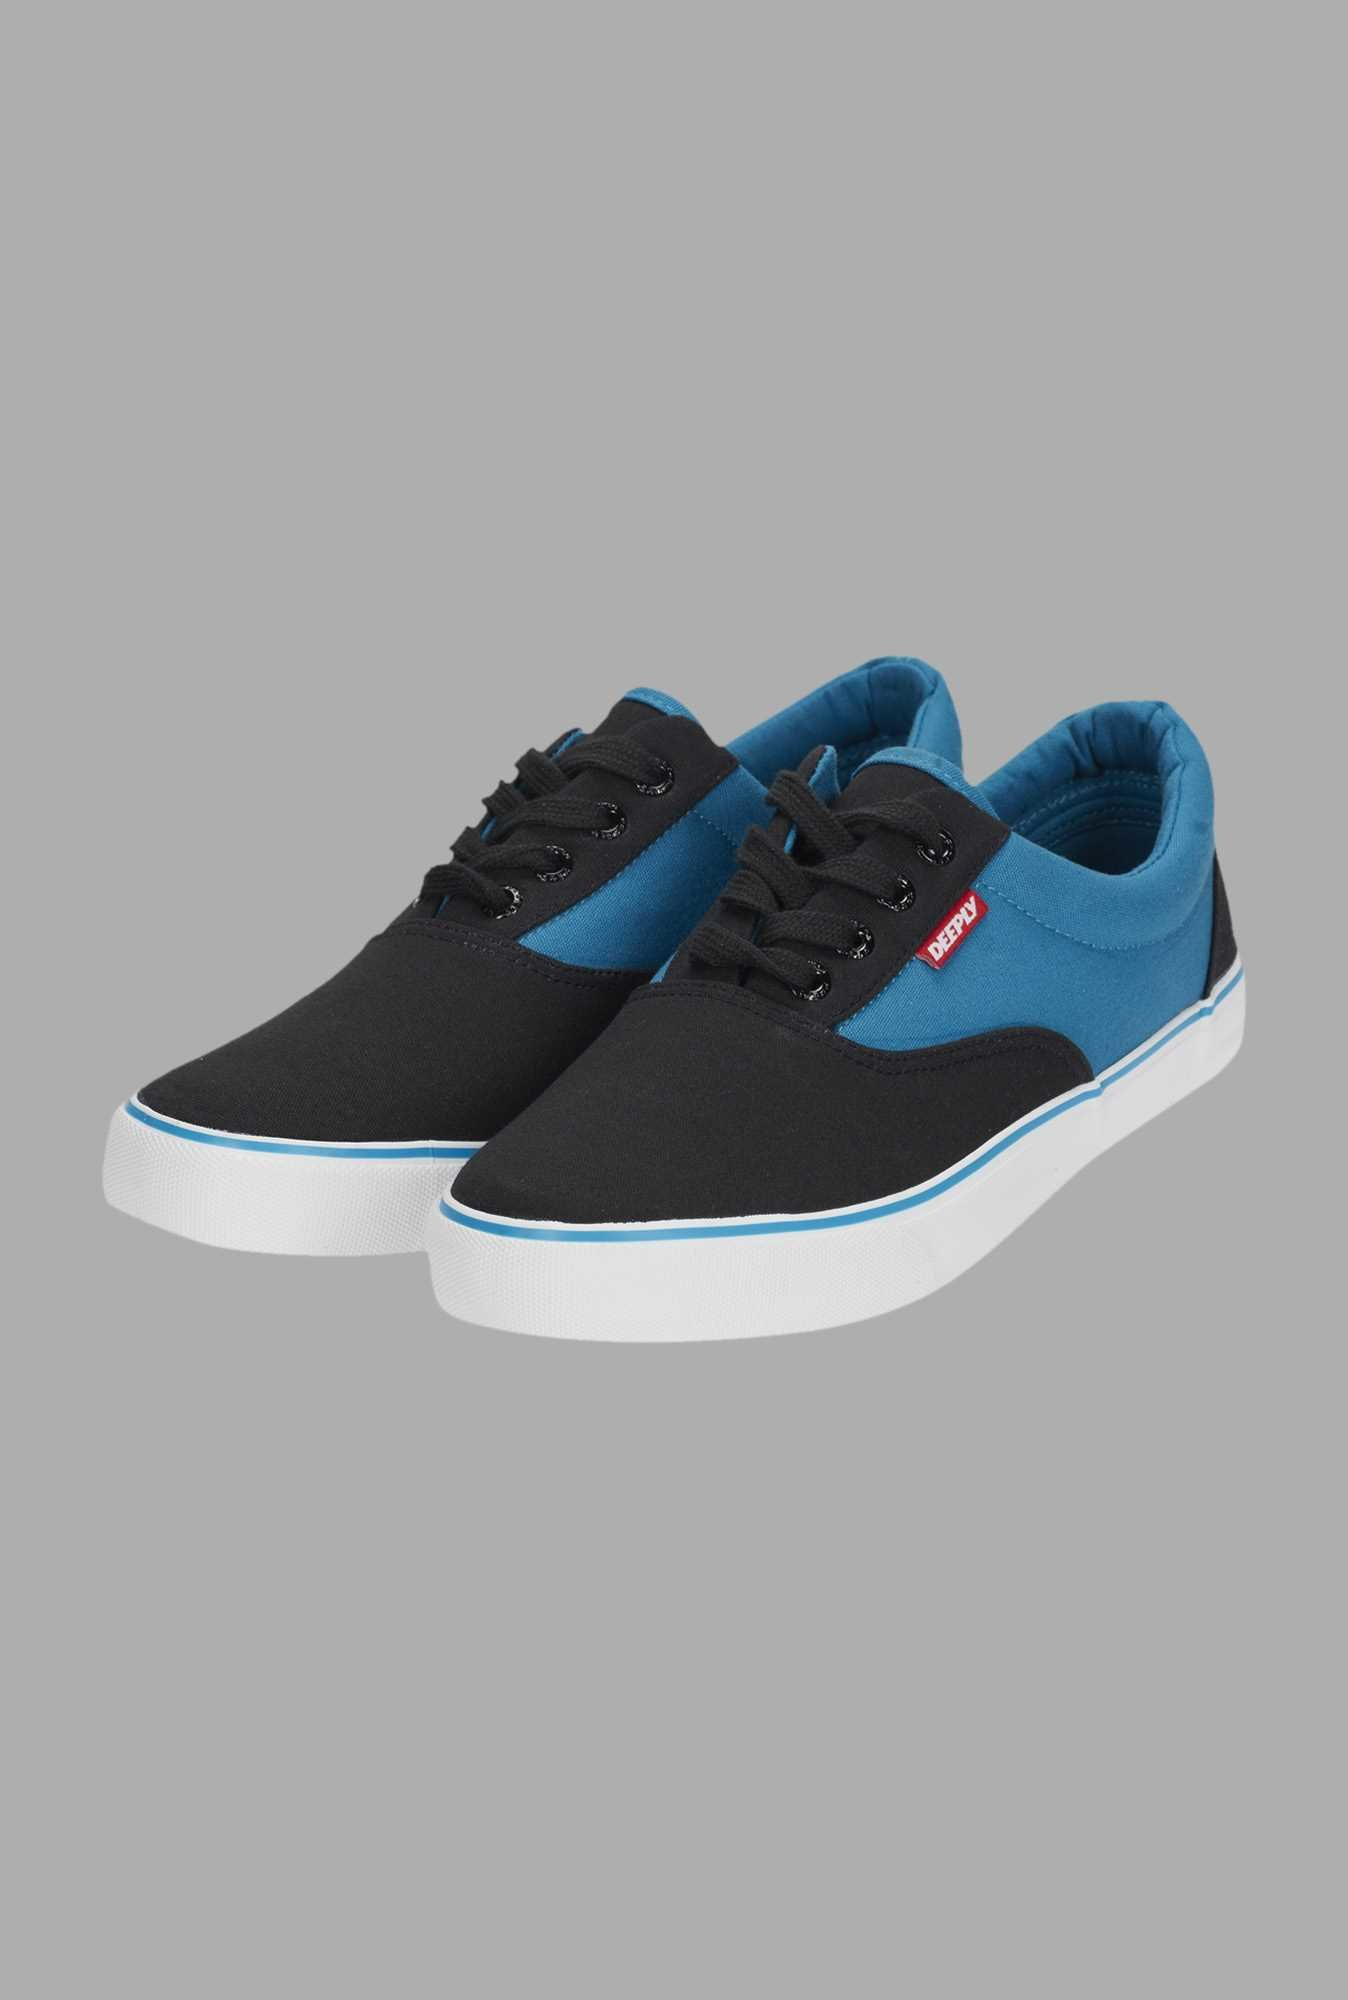 Deeply Black & Blue Canvas Sneakers